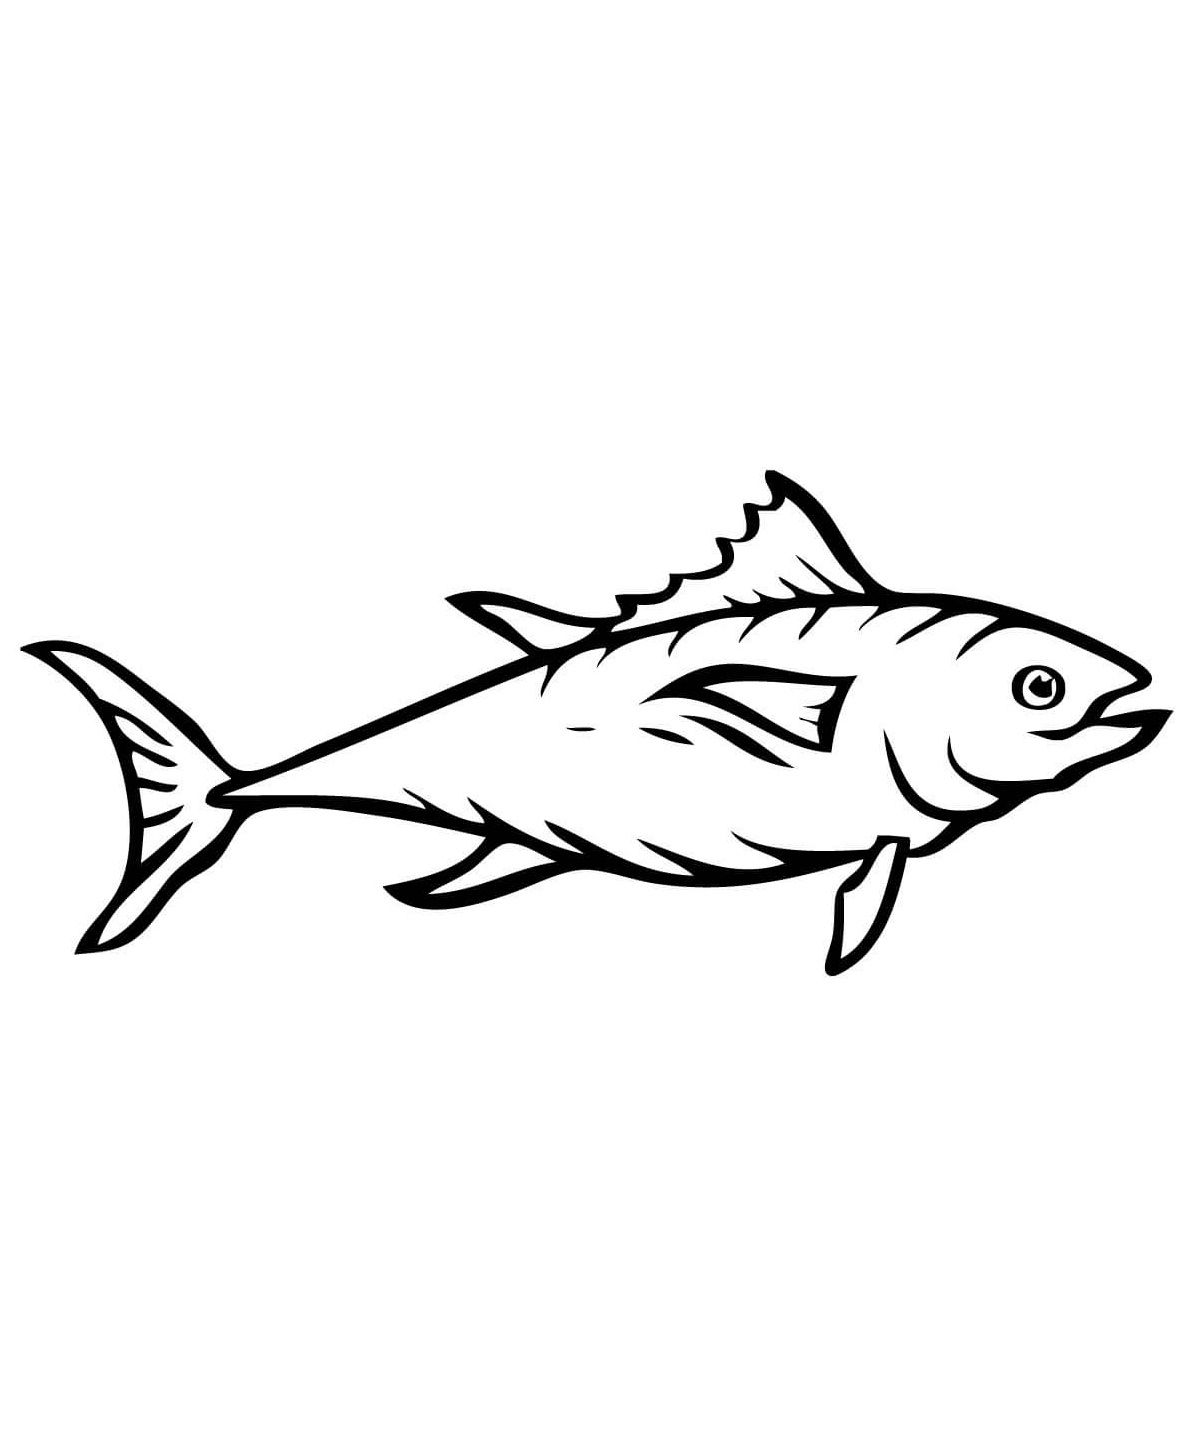 Tuna Fish Coloring Pages For Kids Cho Printable Fish Coloring Pages For Kids